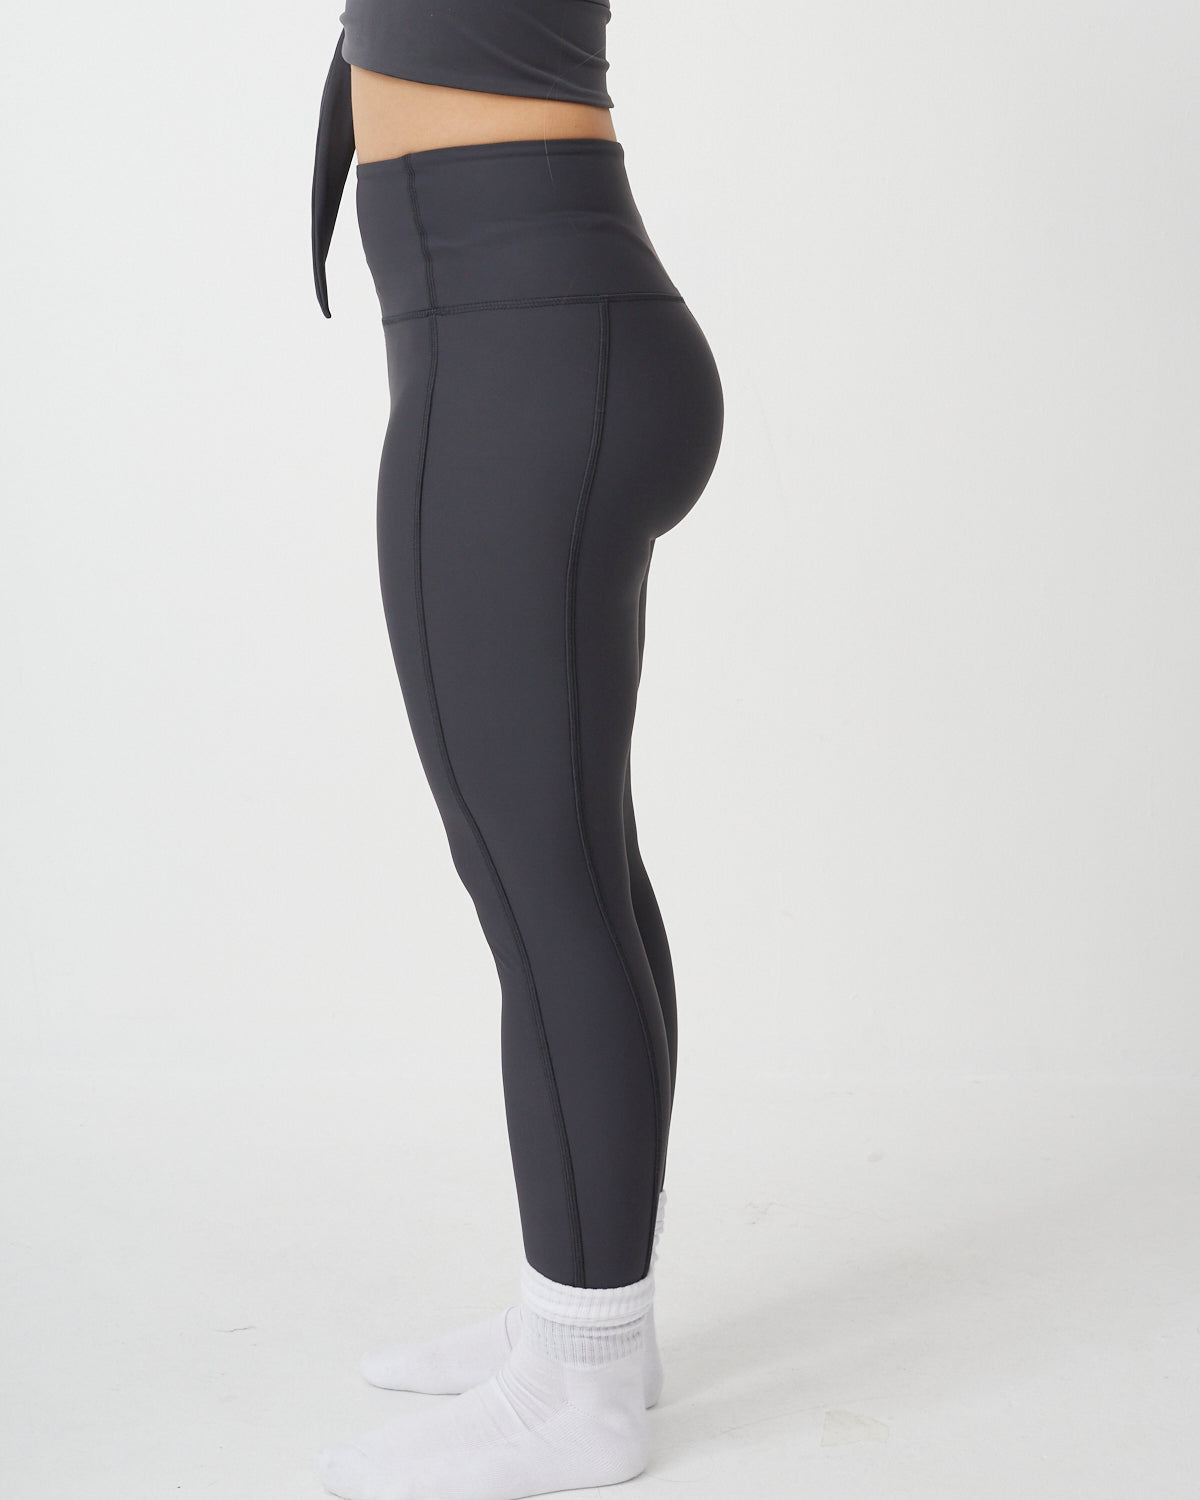 High Waist legging in Charcoal 7/8 - PRE ORDER